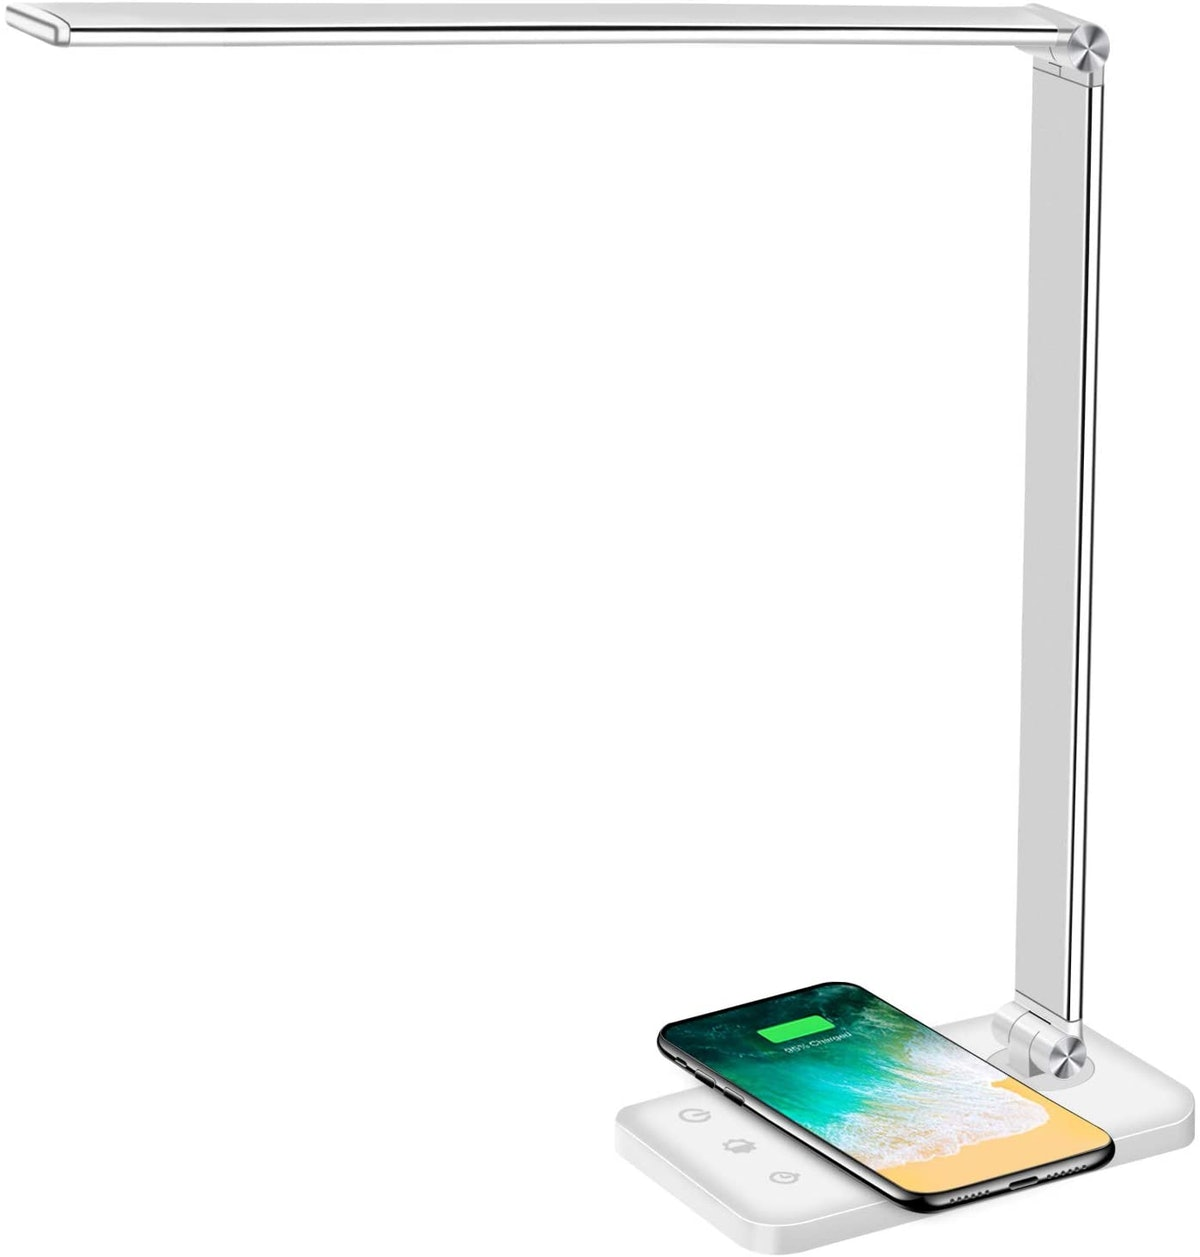 Multifunctional LED Desk Lamp with Wireless Charger & USB Charging Port